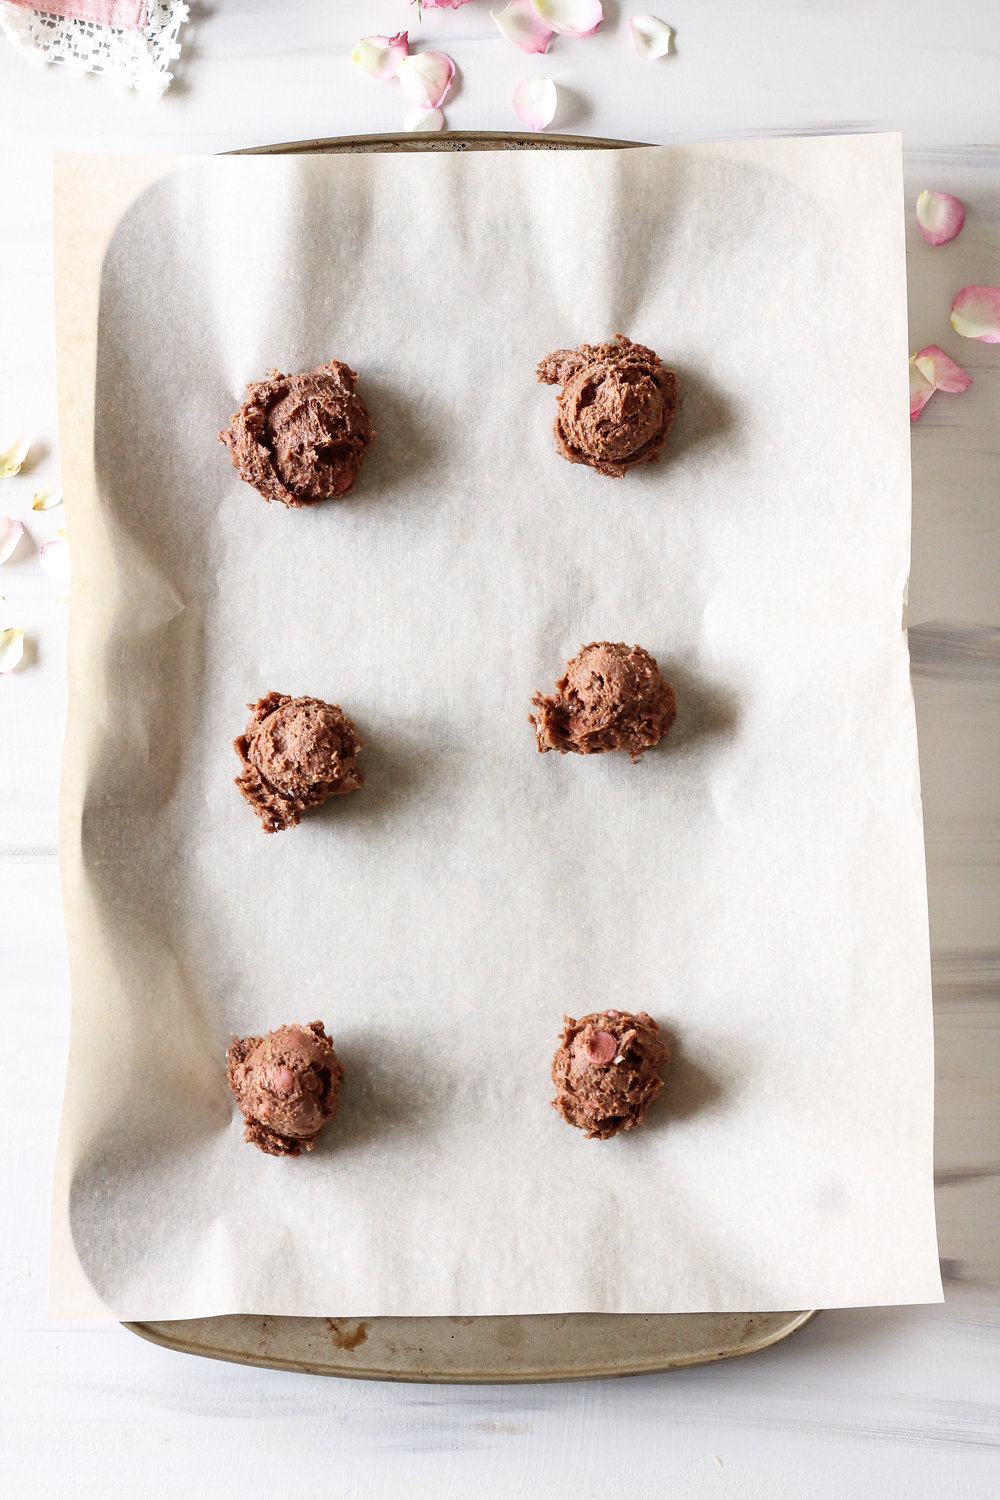 RUBY CHOCOLATE CHIP COOKIES!! These ultra crispy chocolate cookies are studded with the newest and most coveted kind of chocolate - ruby chocolate!  Find the super simple recipe on www.pedanticfoodie.com!